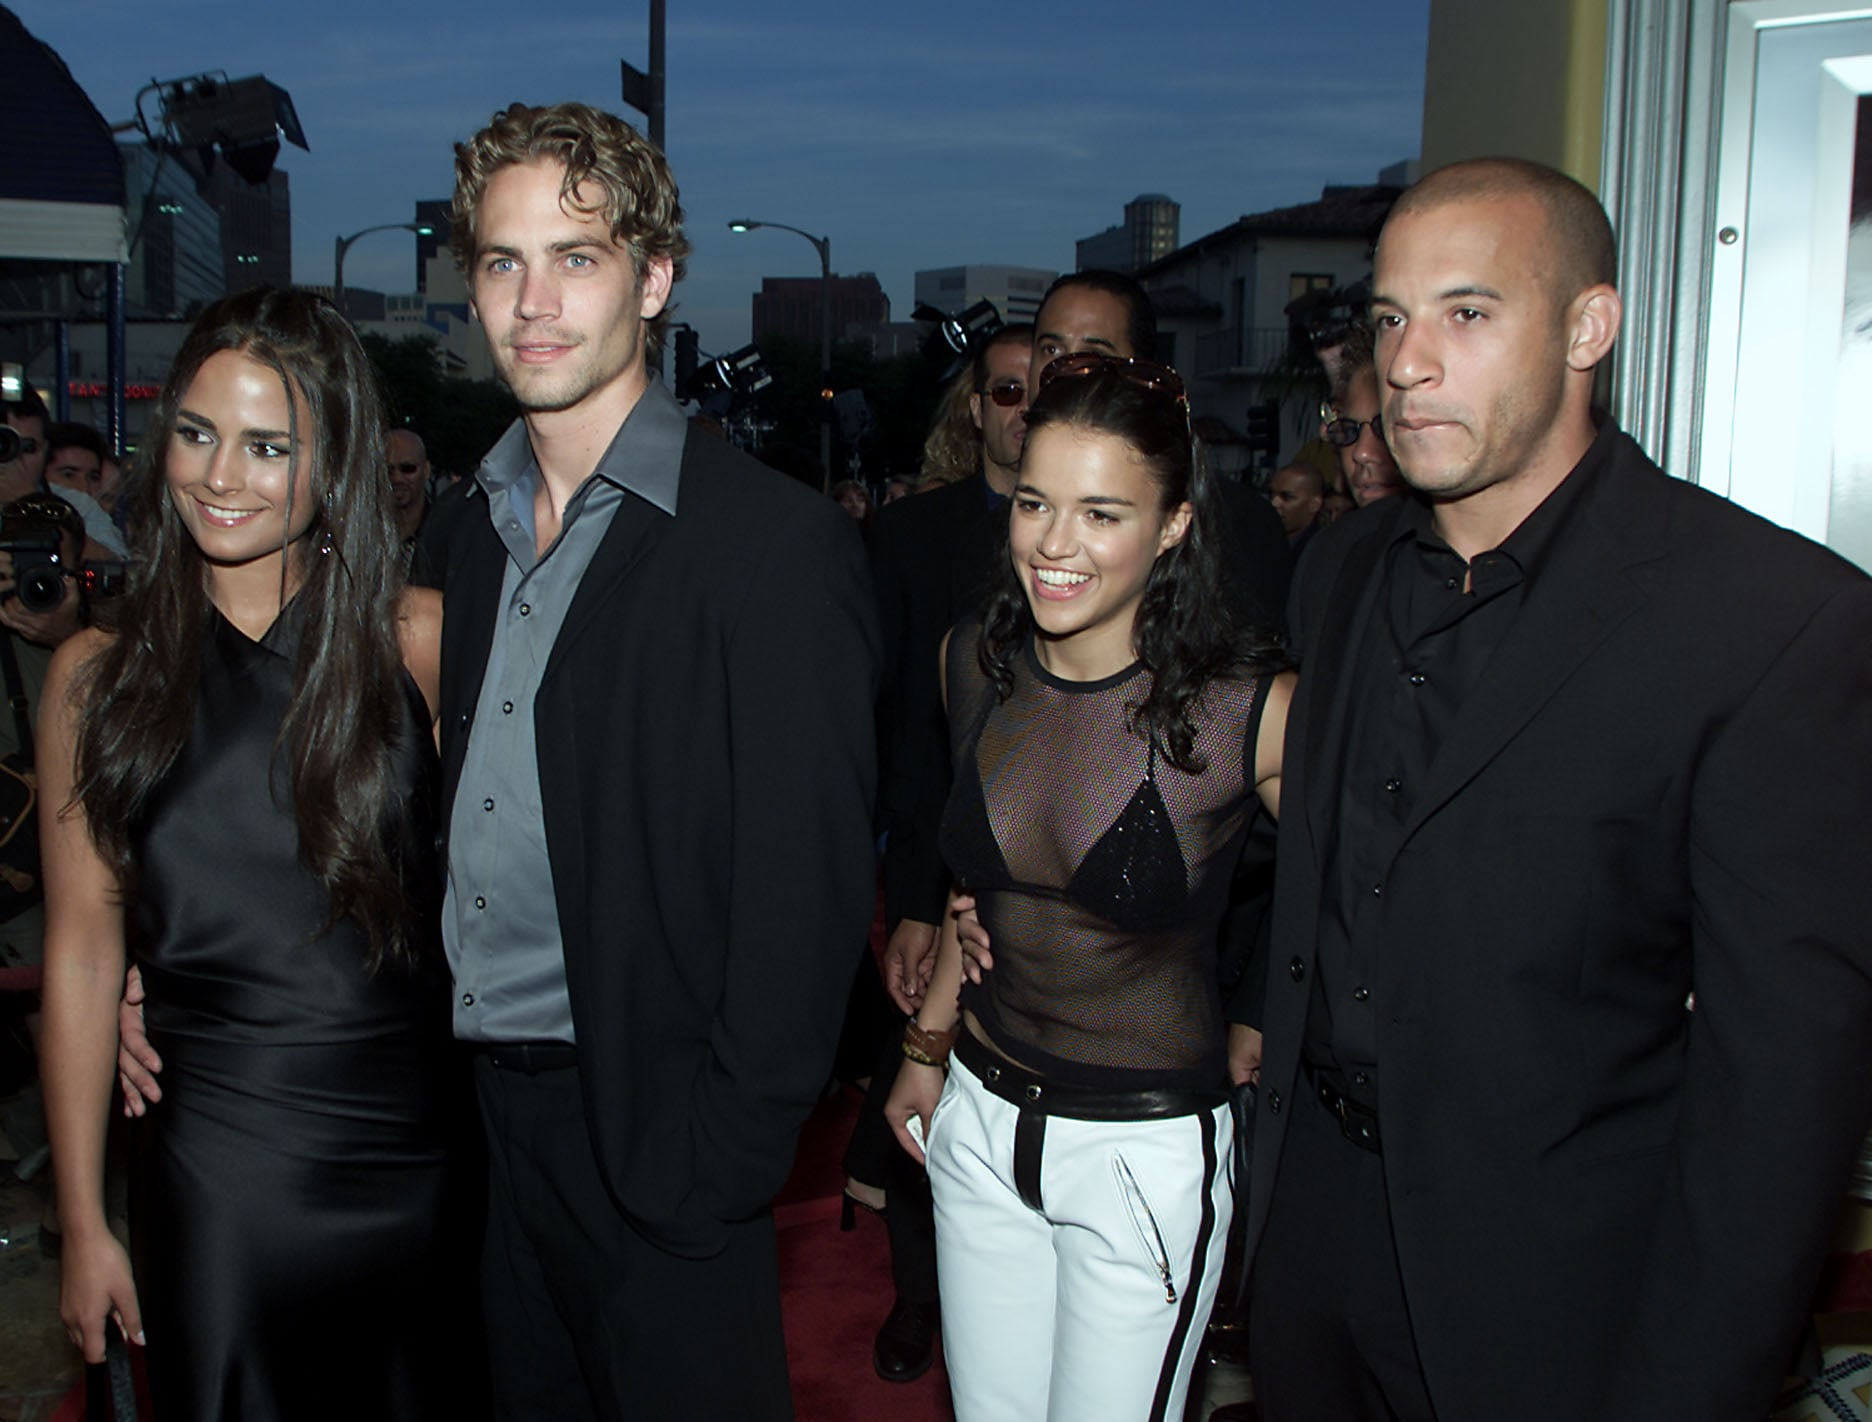 Fast and Furious Cast Red Carpet Pictures Over the Years   POPSUGAR Celebrity